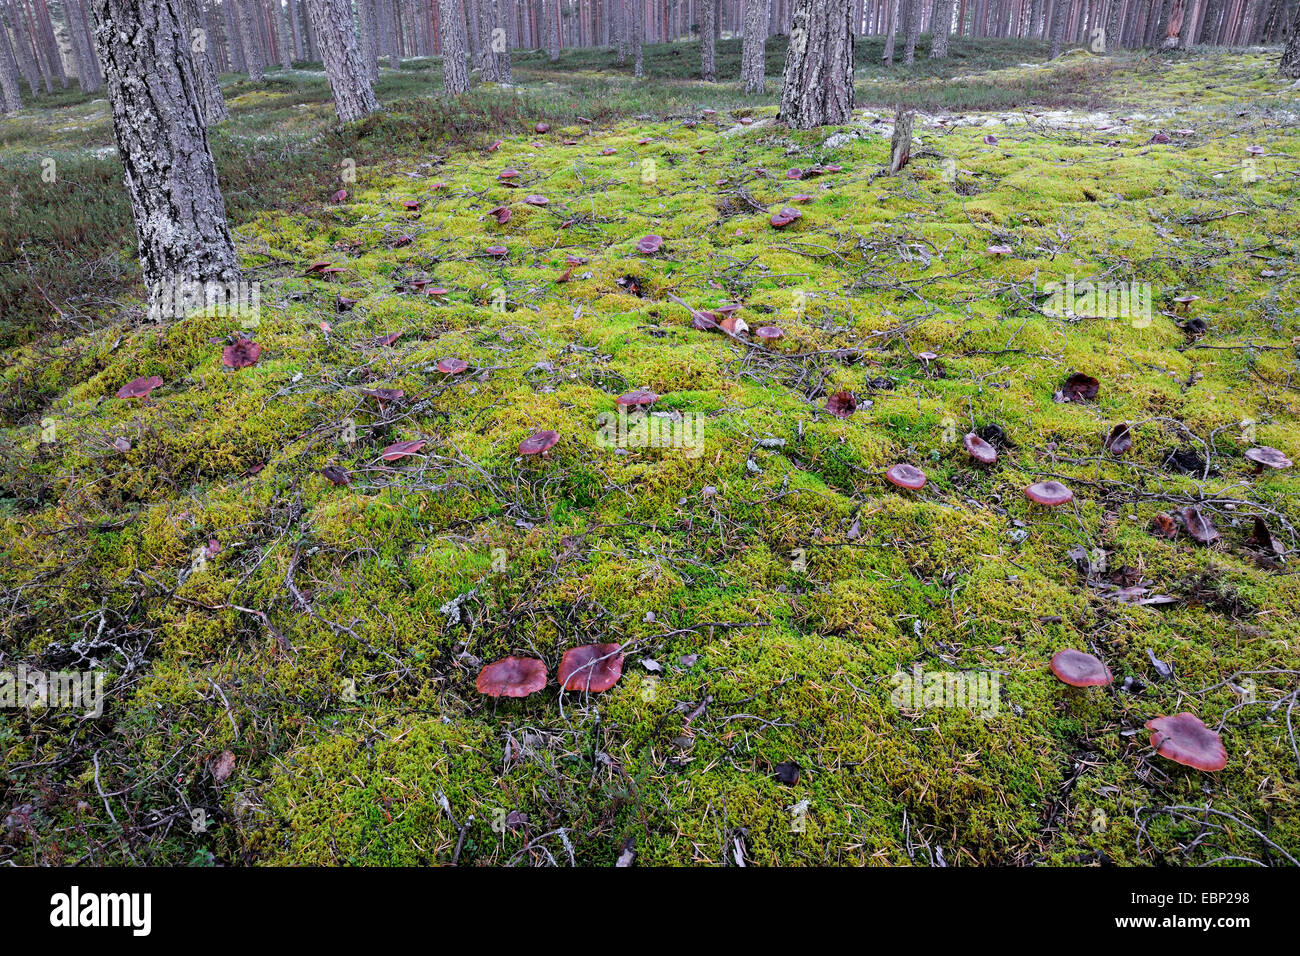 funnel (Clitocybe inversa), many funnels on mossy forest floor with heath and pines, Finland Stock Photo